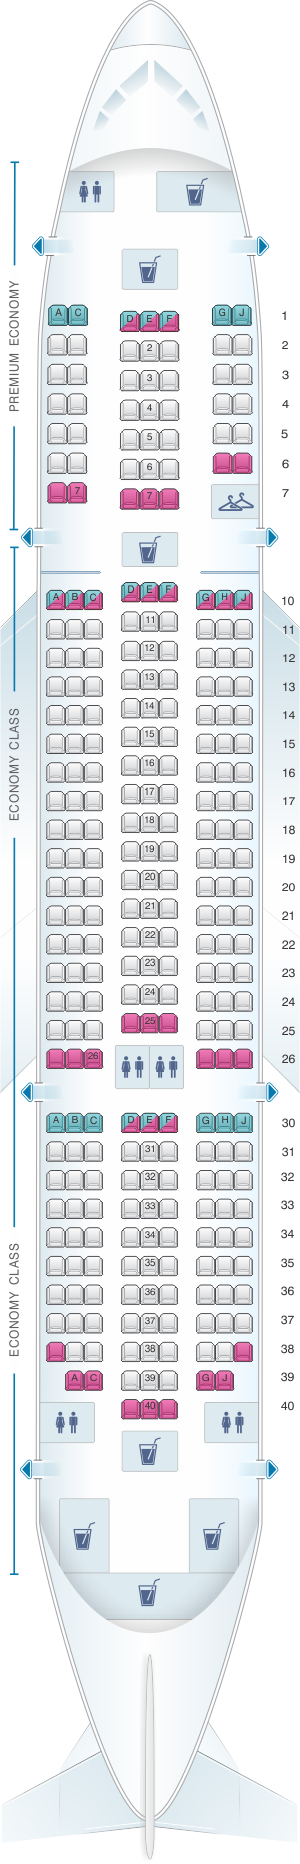 Seat map for TUI Boeing B787 Dreamliner